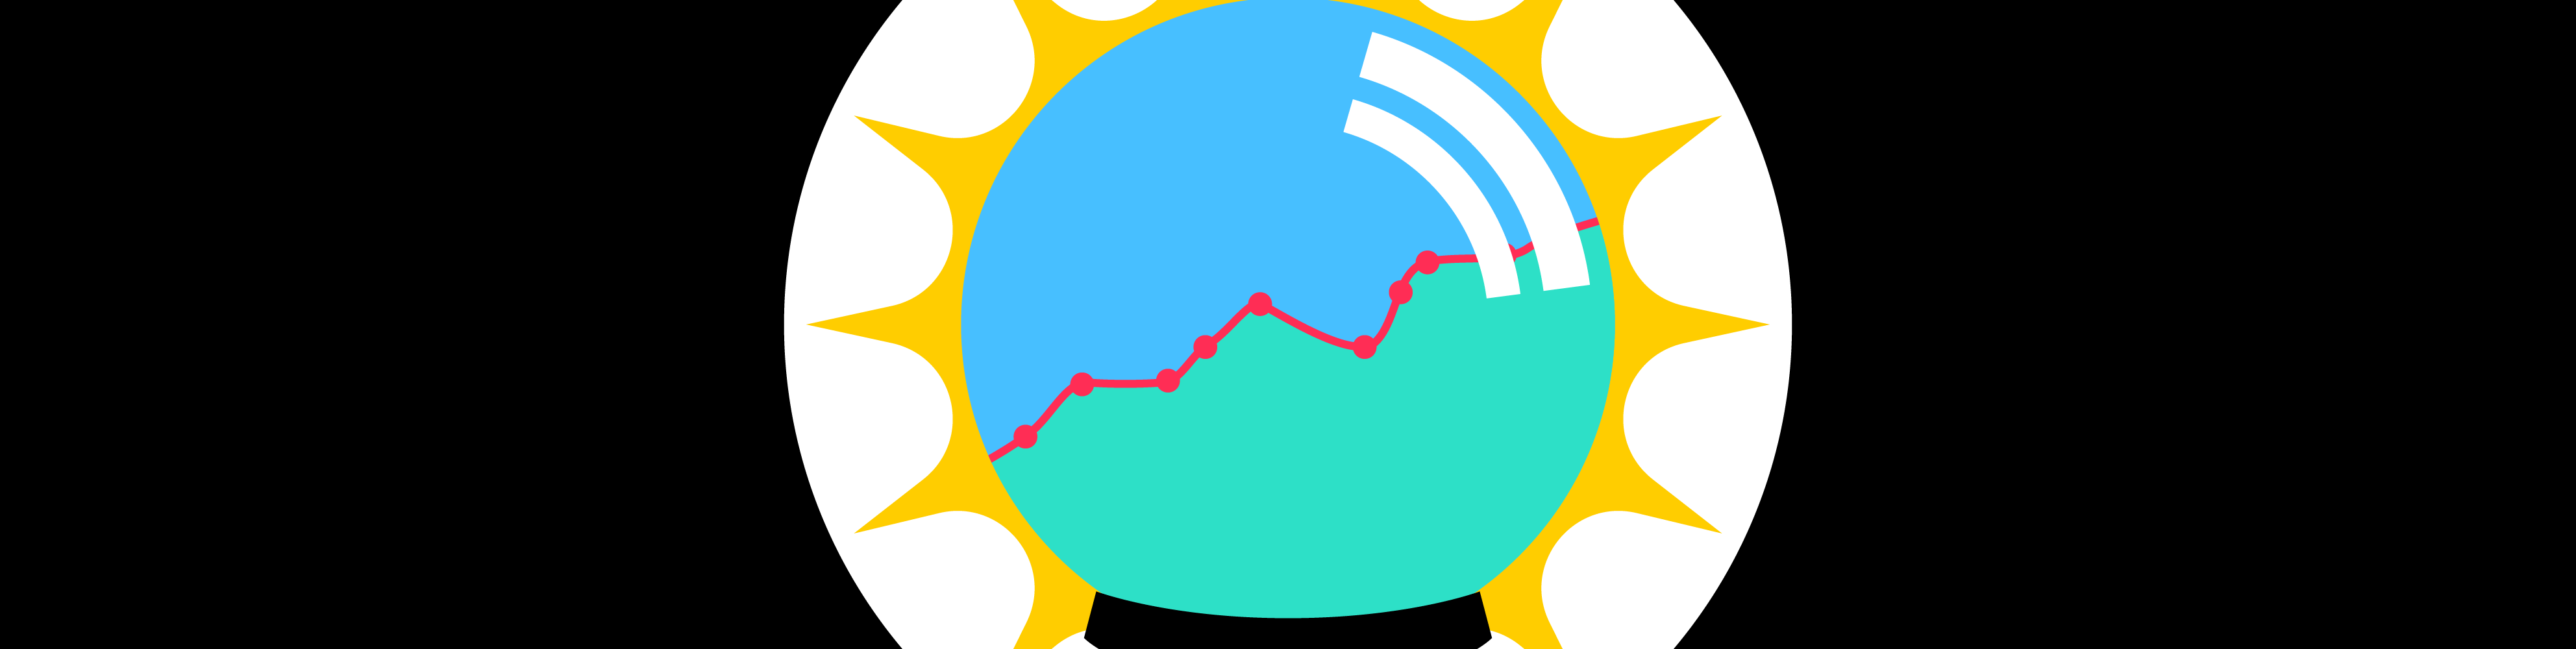 Illustrated future globe with graph going up